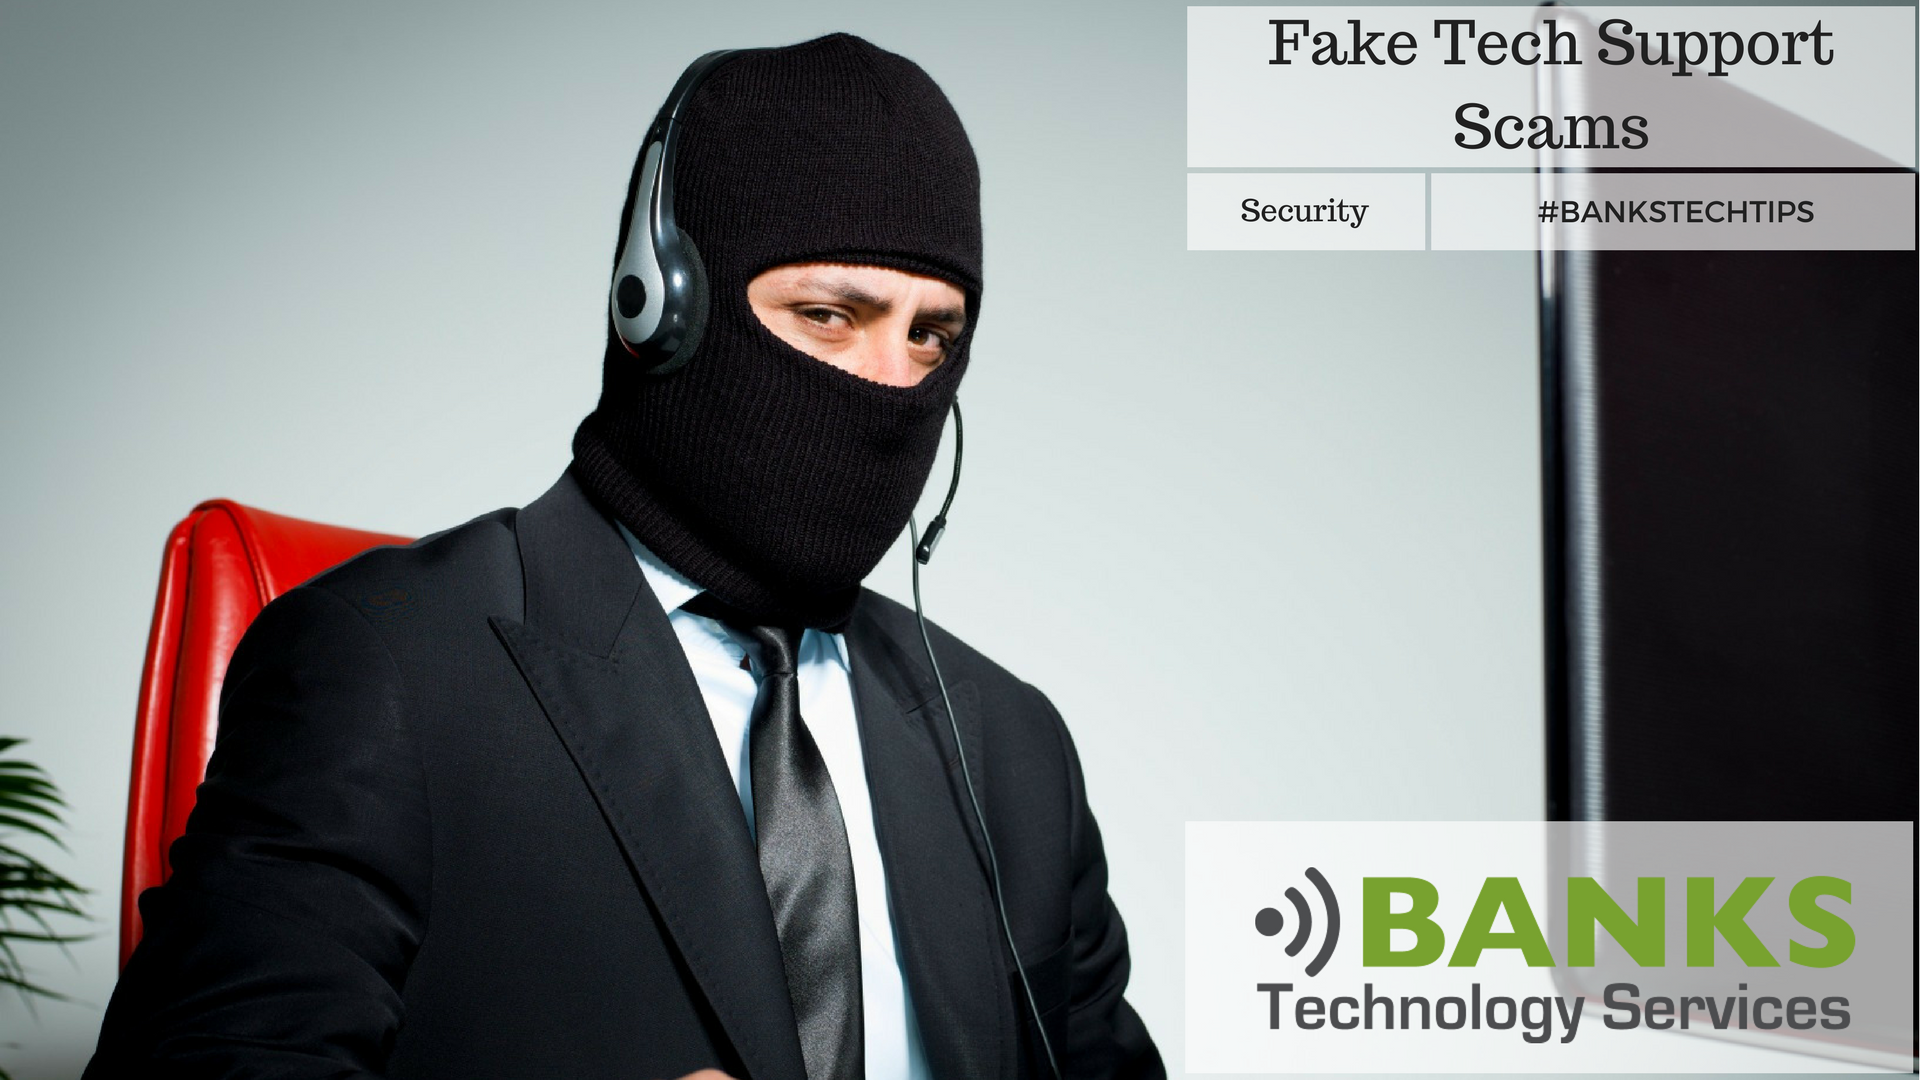 Fake Tech Support Scams